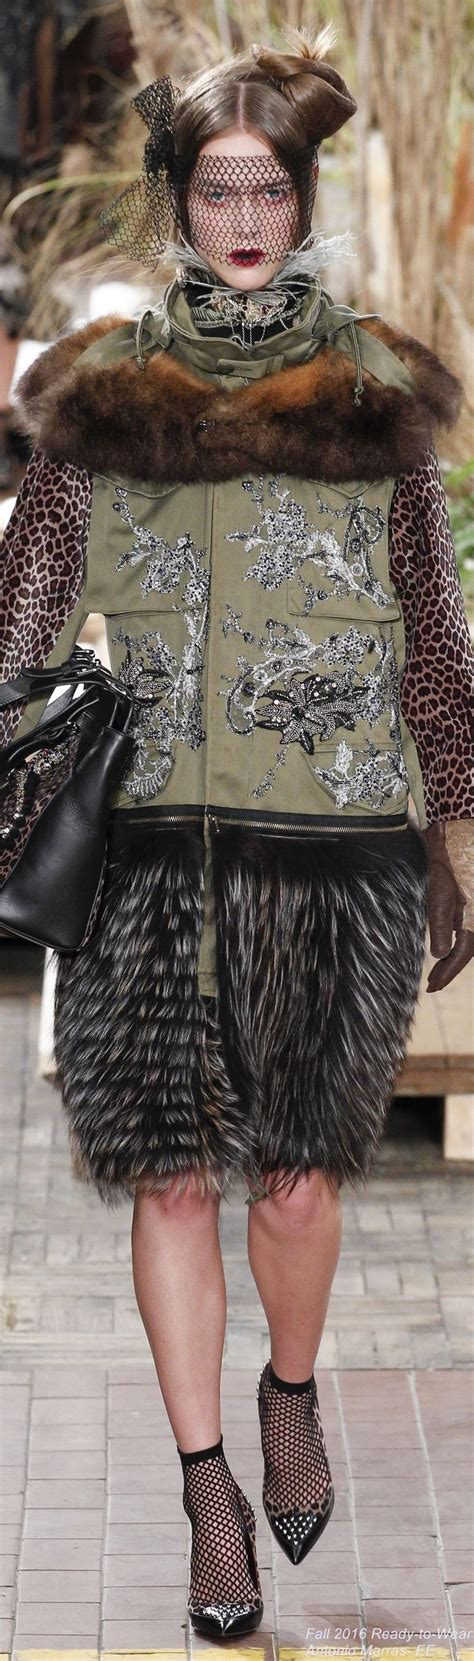 25+ best ideas about Ugly Clothes on Pinterest | Ugly dresses Crazy fashion and Crazy clothes